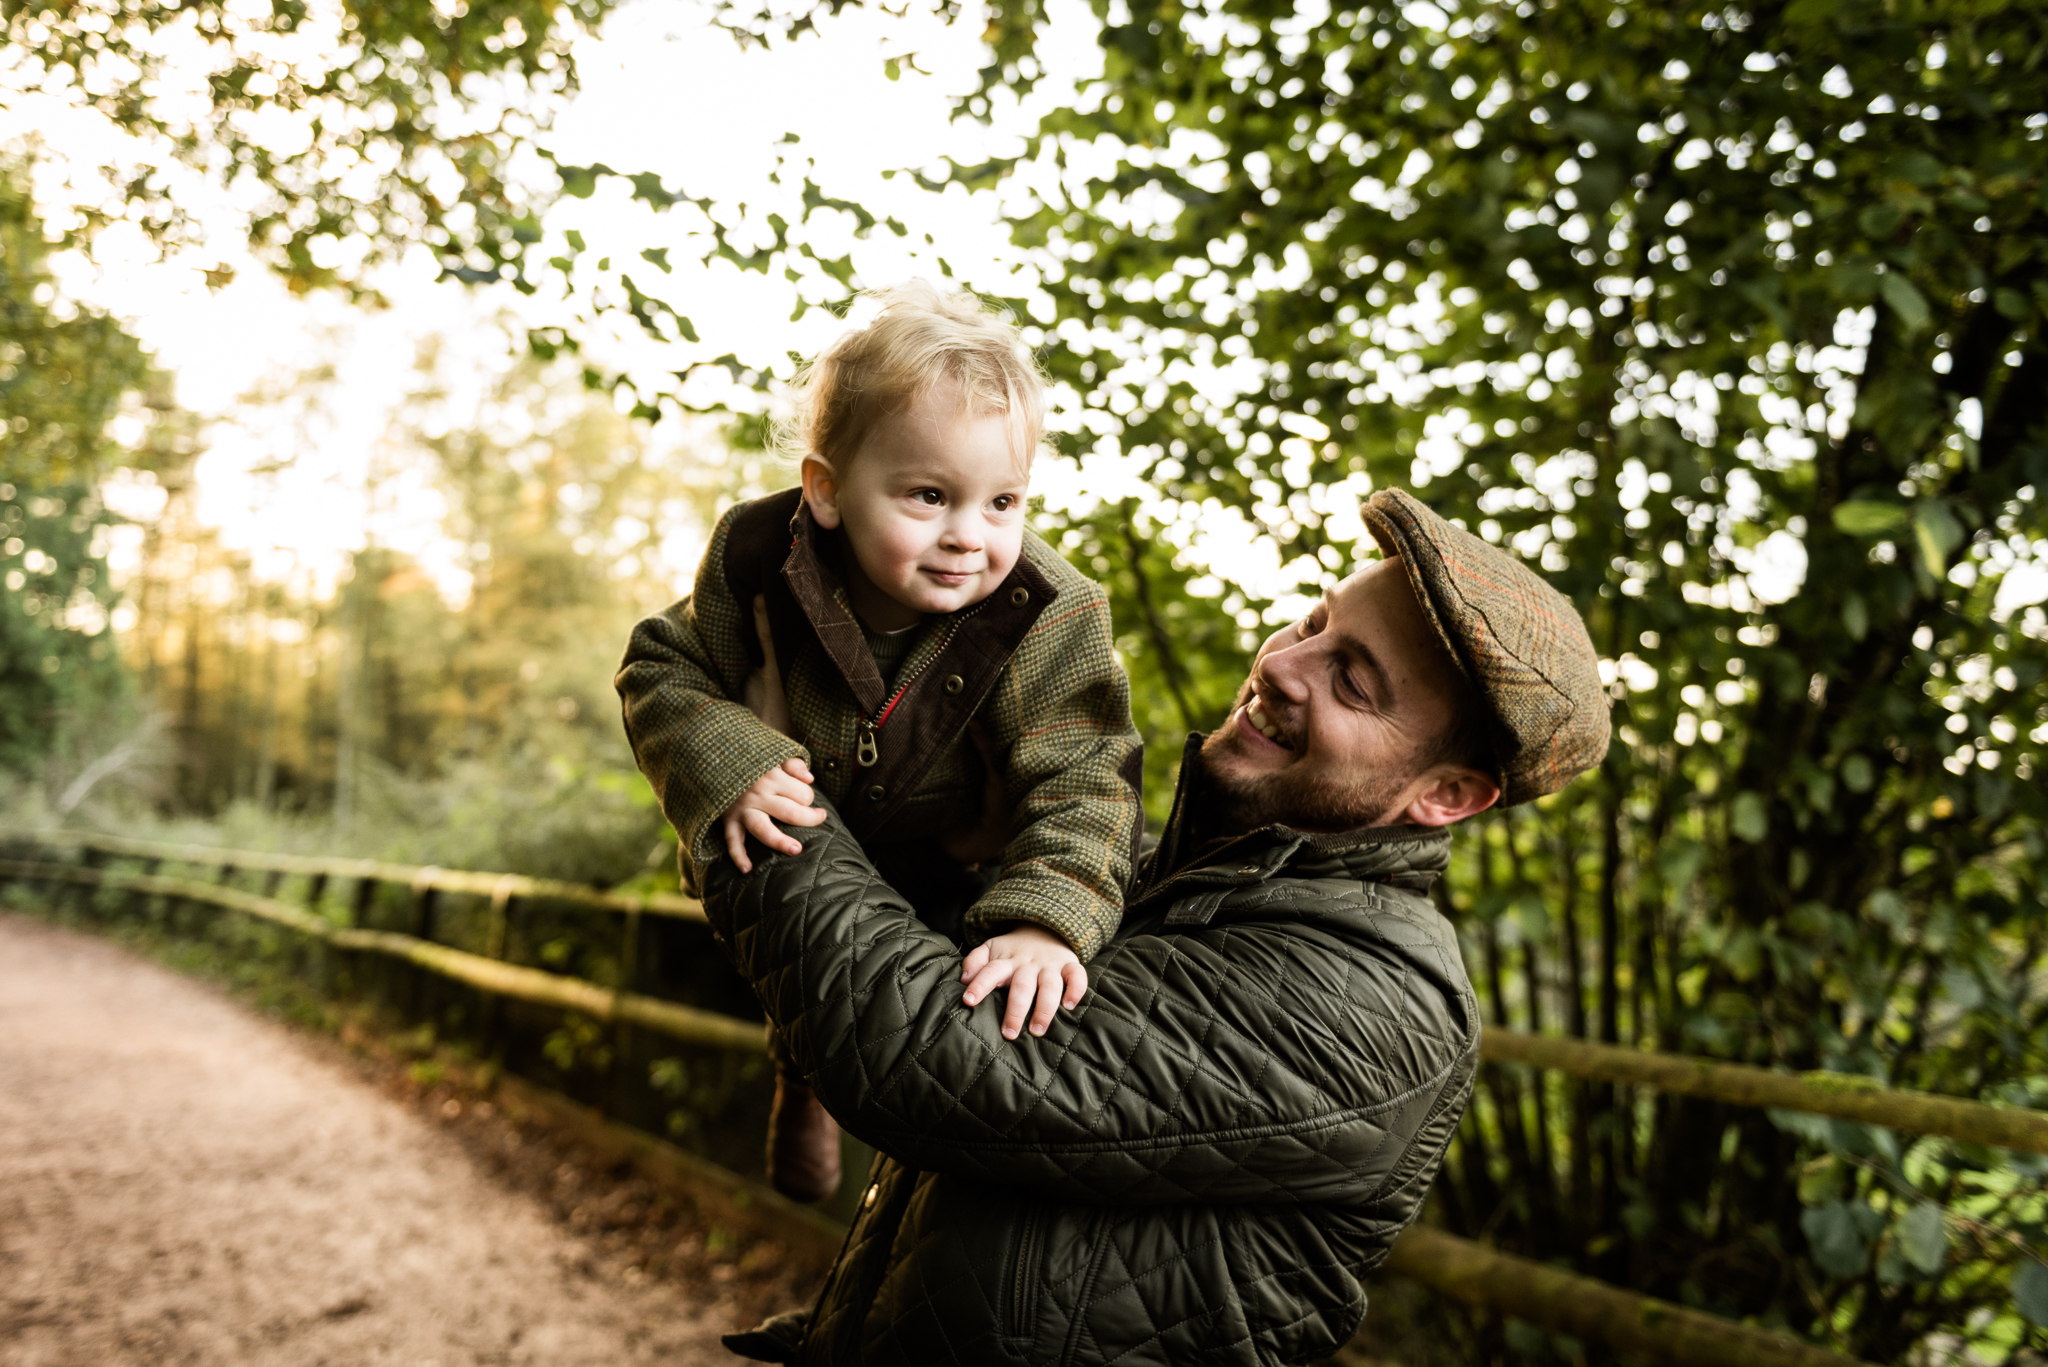 Autumn Documentary Lifestyle Family Photography at Clent Hills, Worcestershire Country Park countryside outdoors nature - Jenny Harper-24.jpg